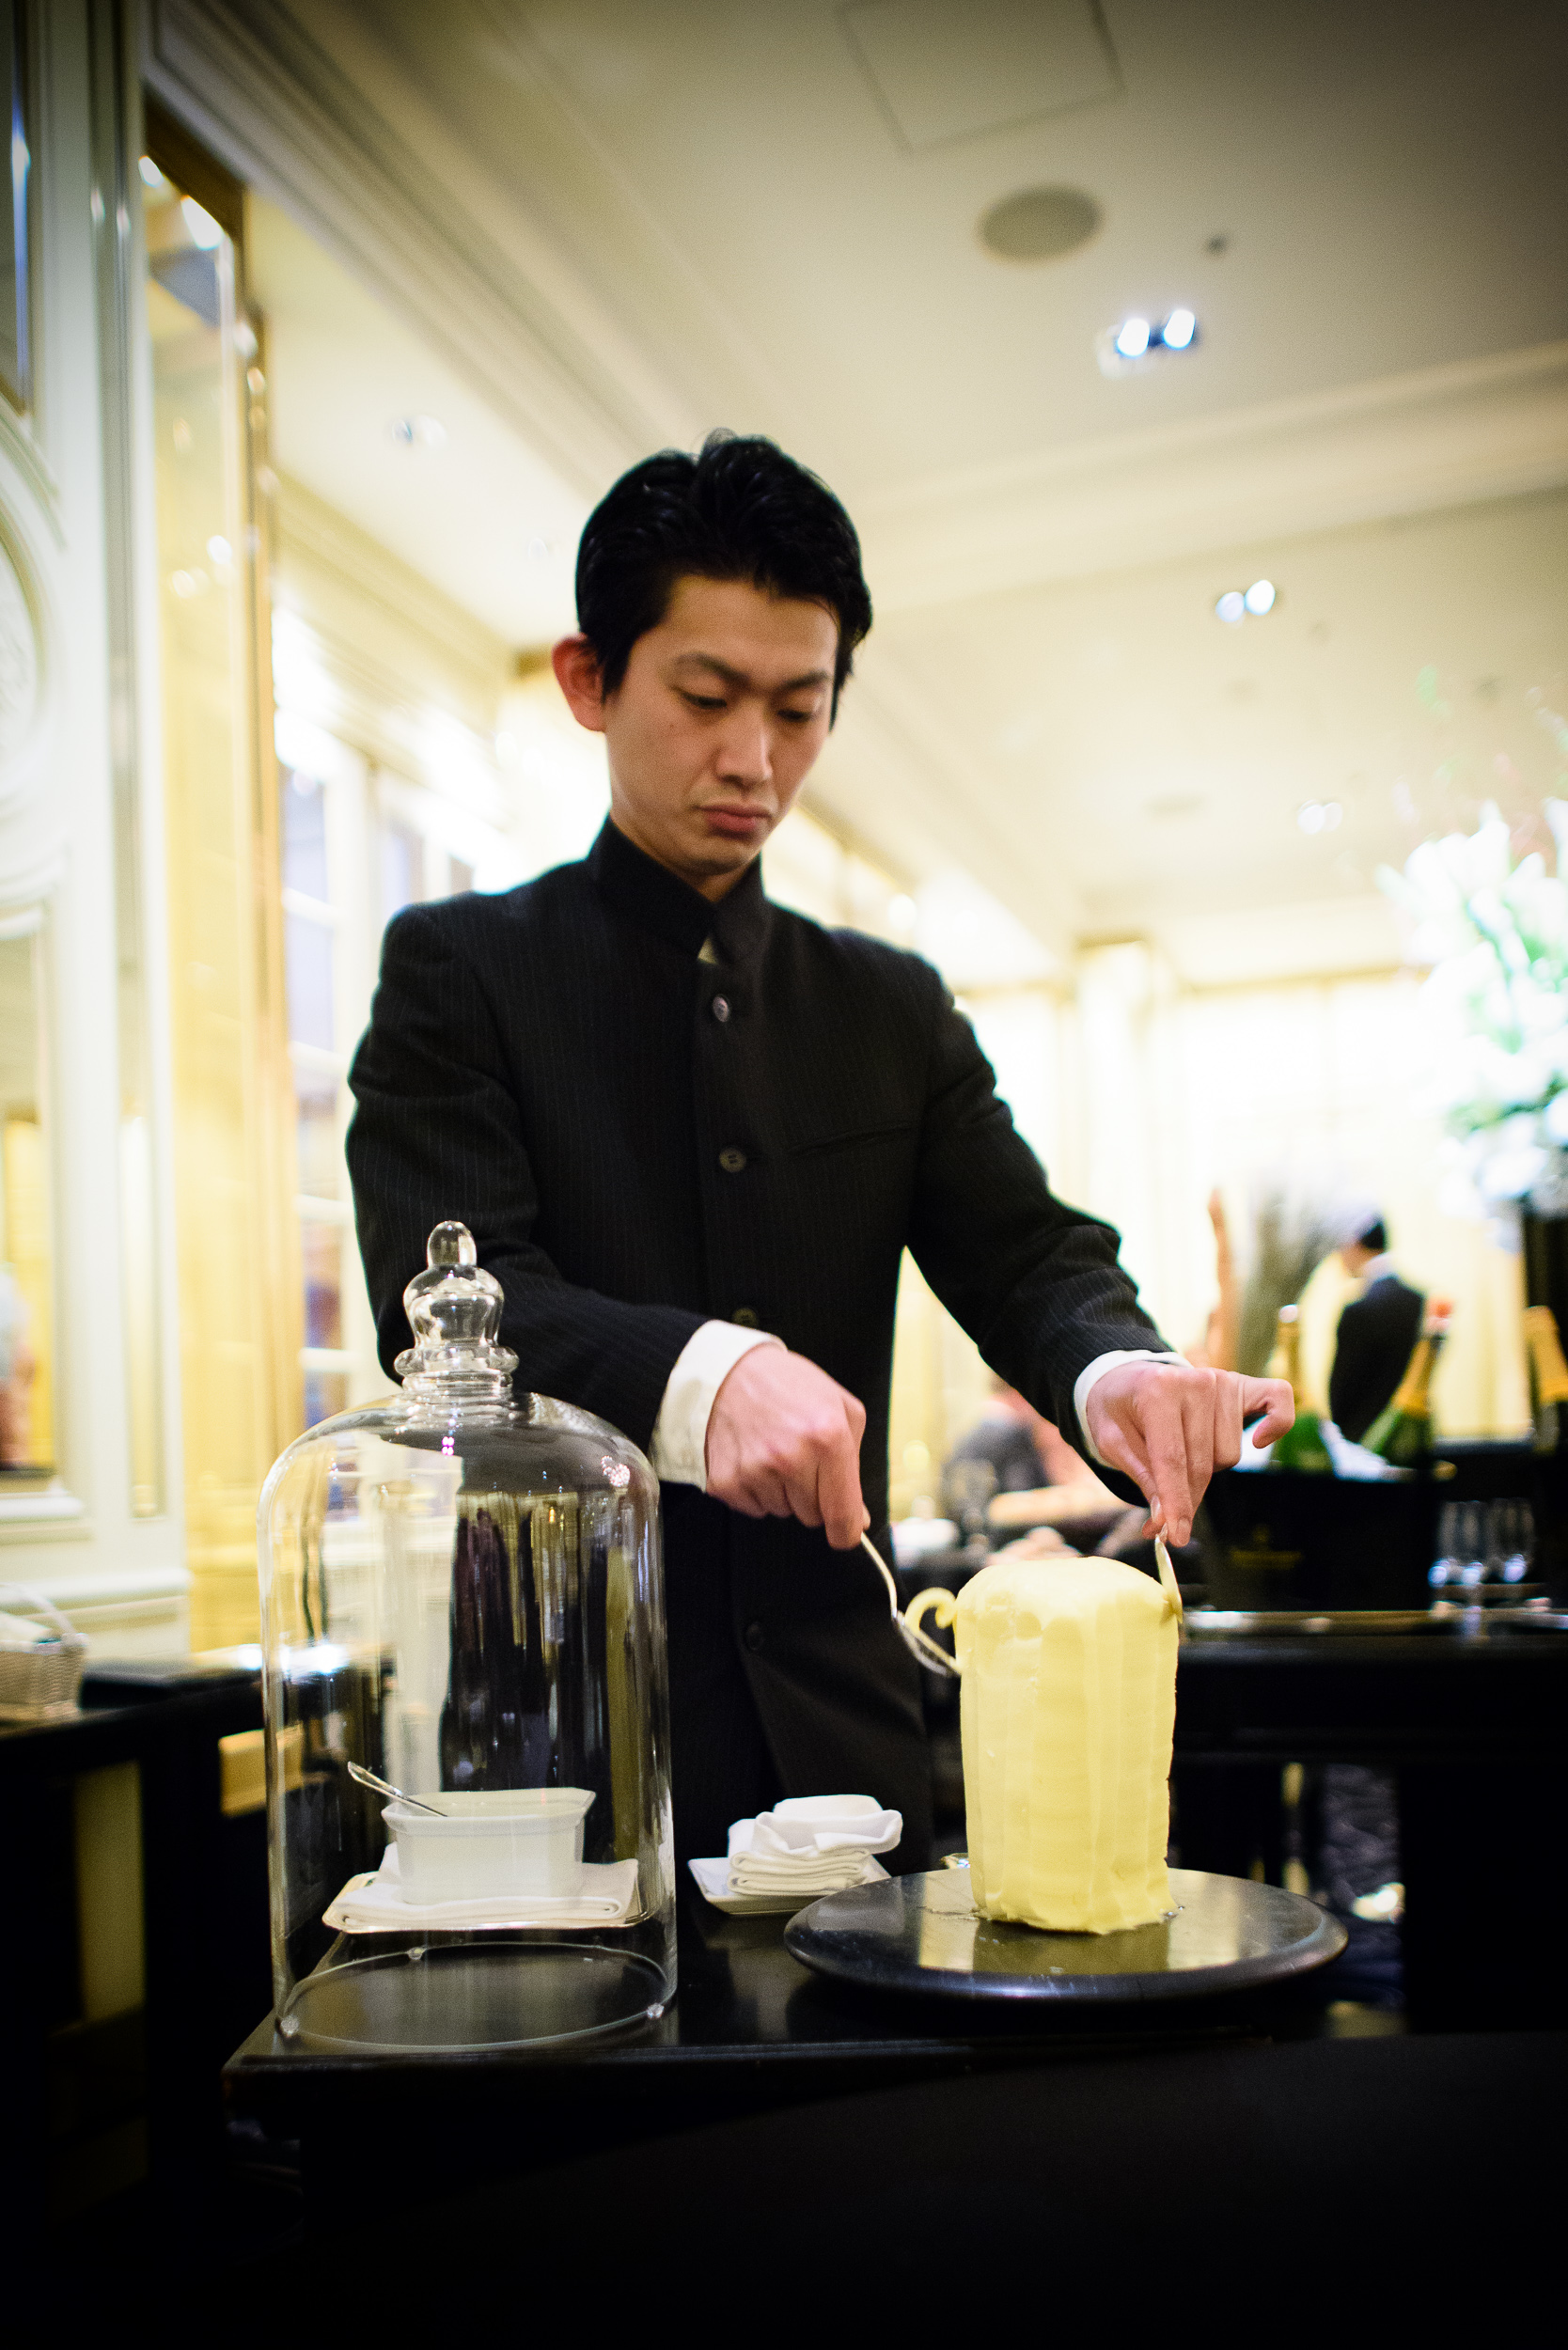 Table-side butter service